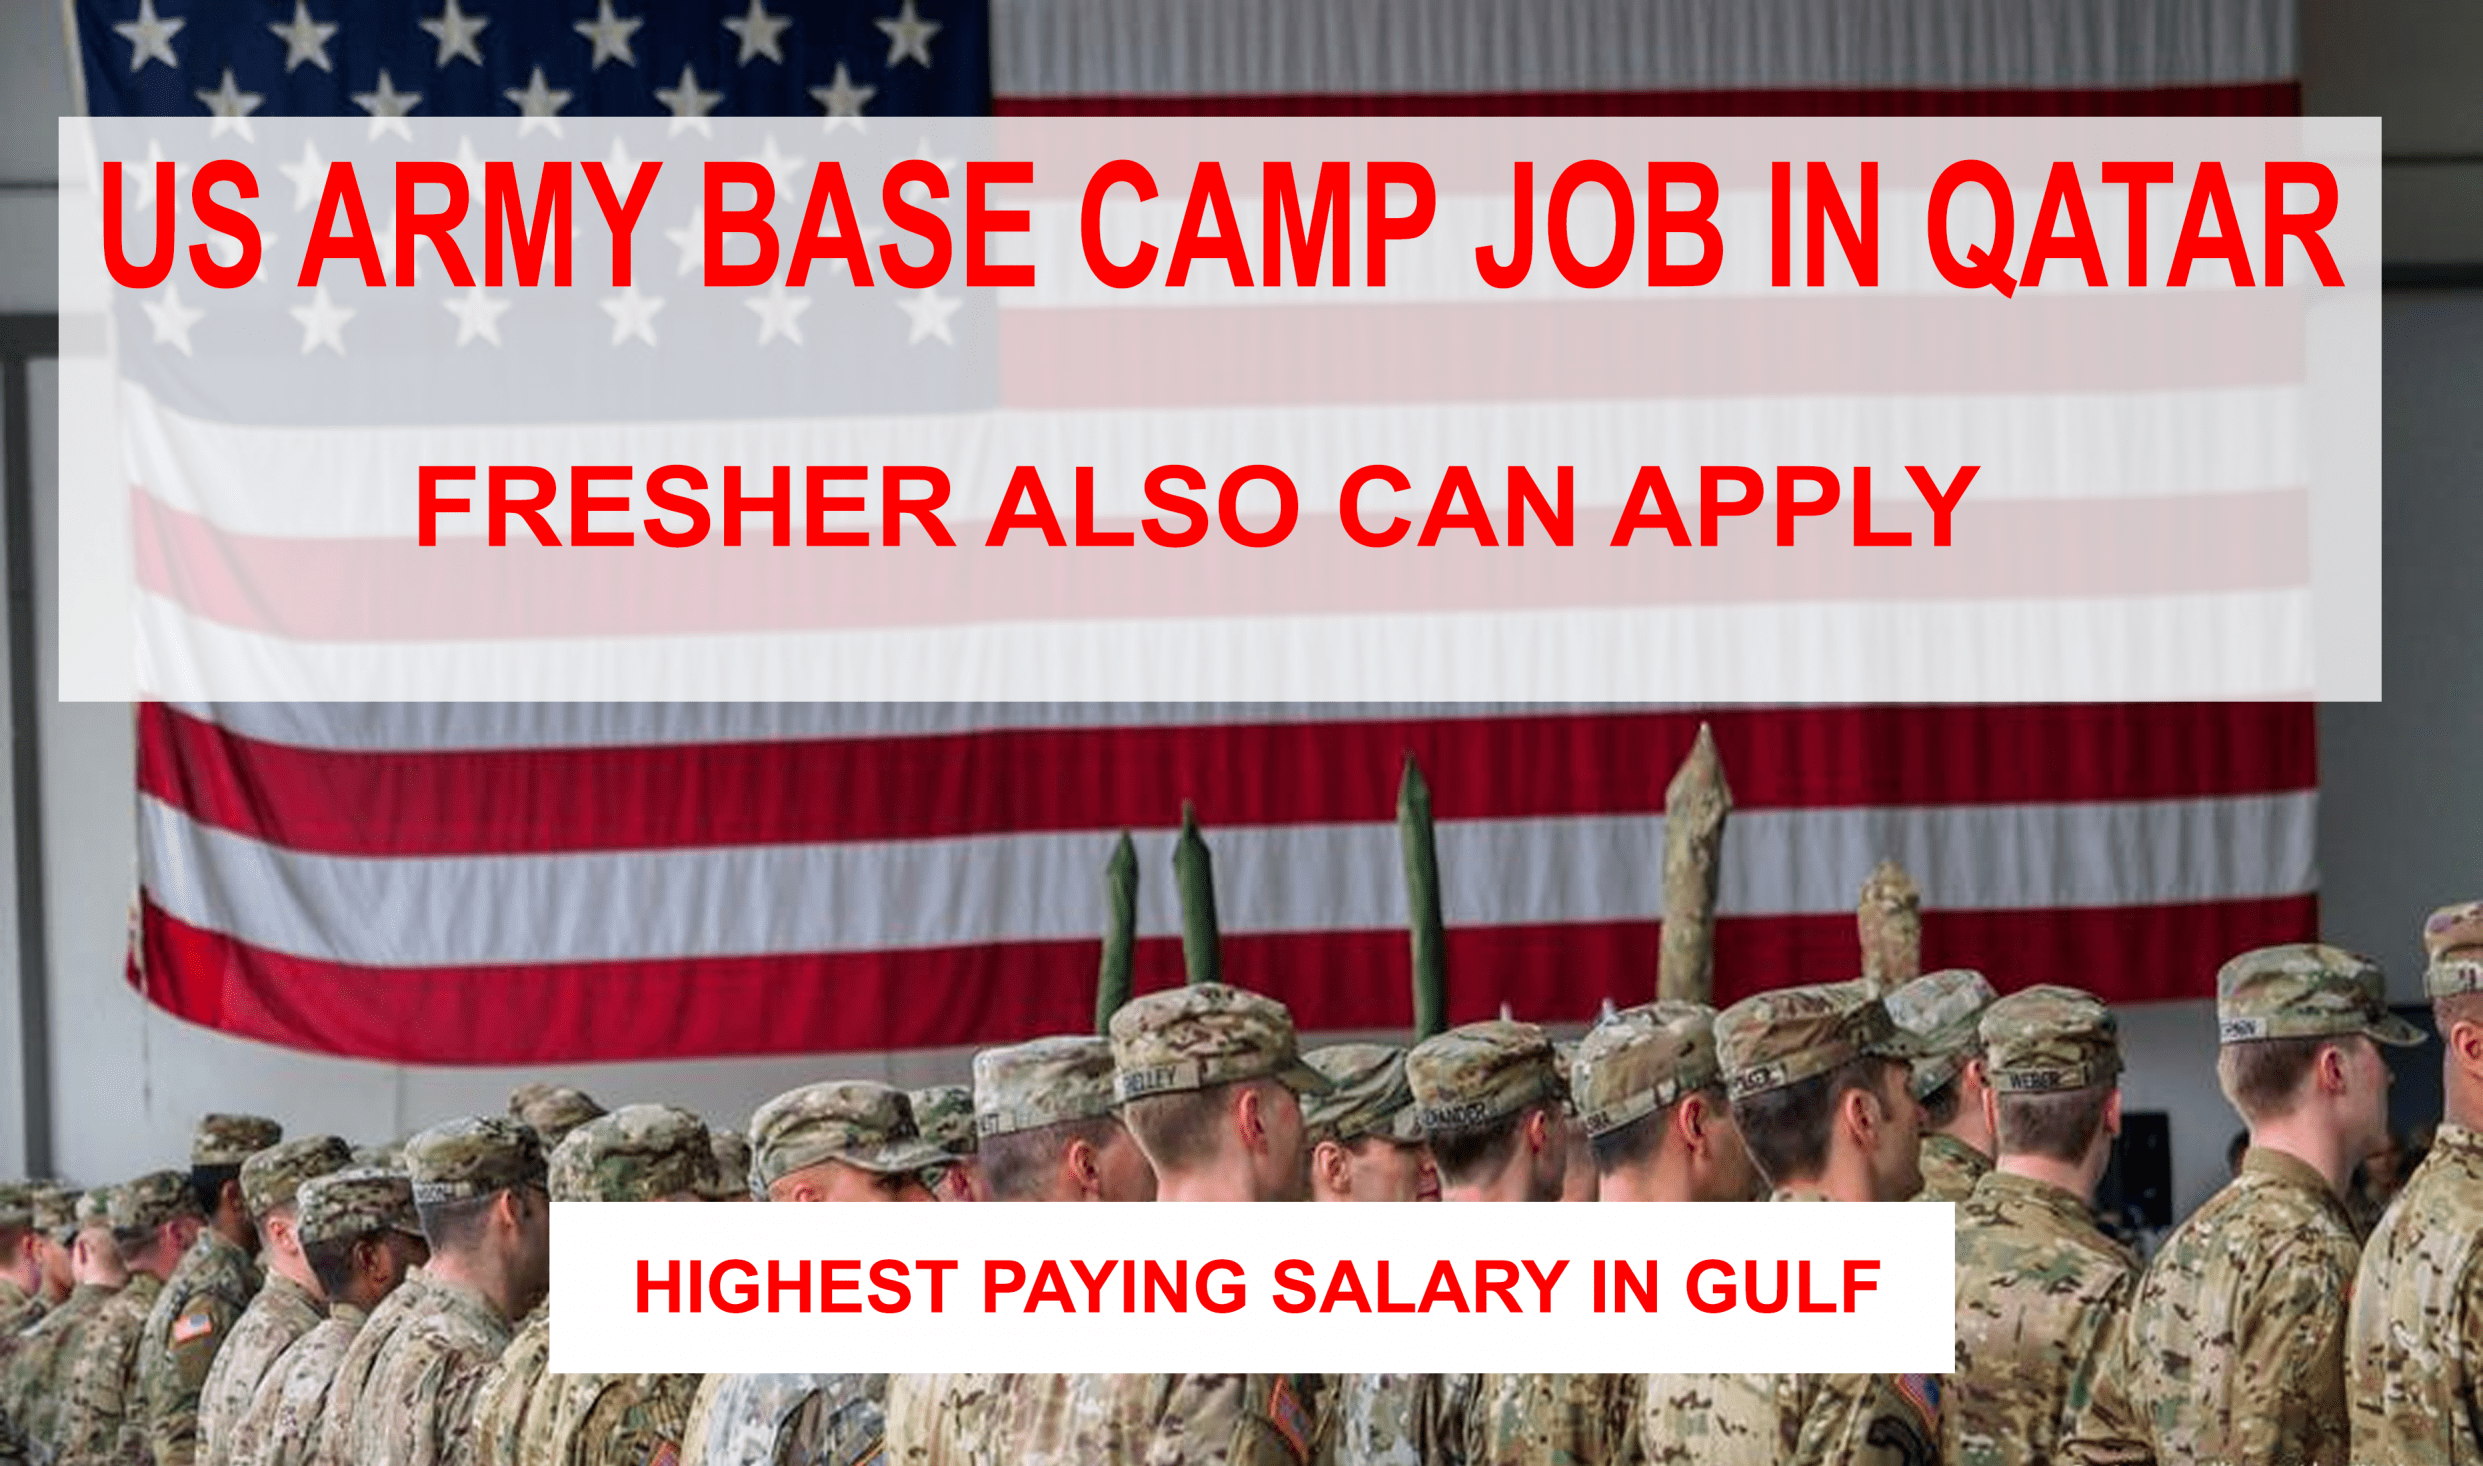 US Army Camp Job in Qatar